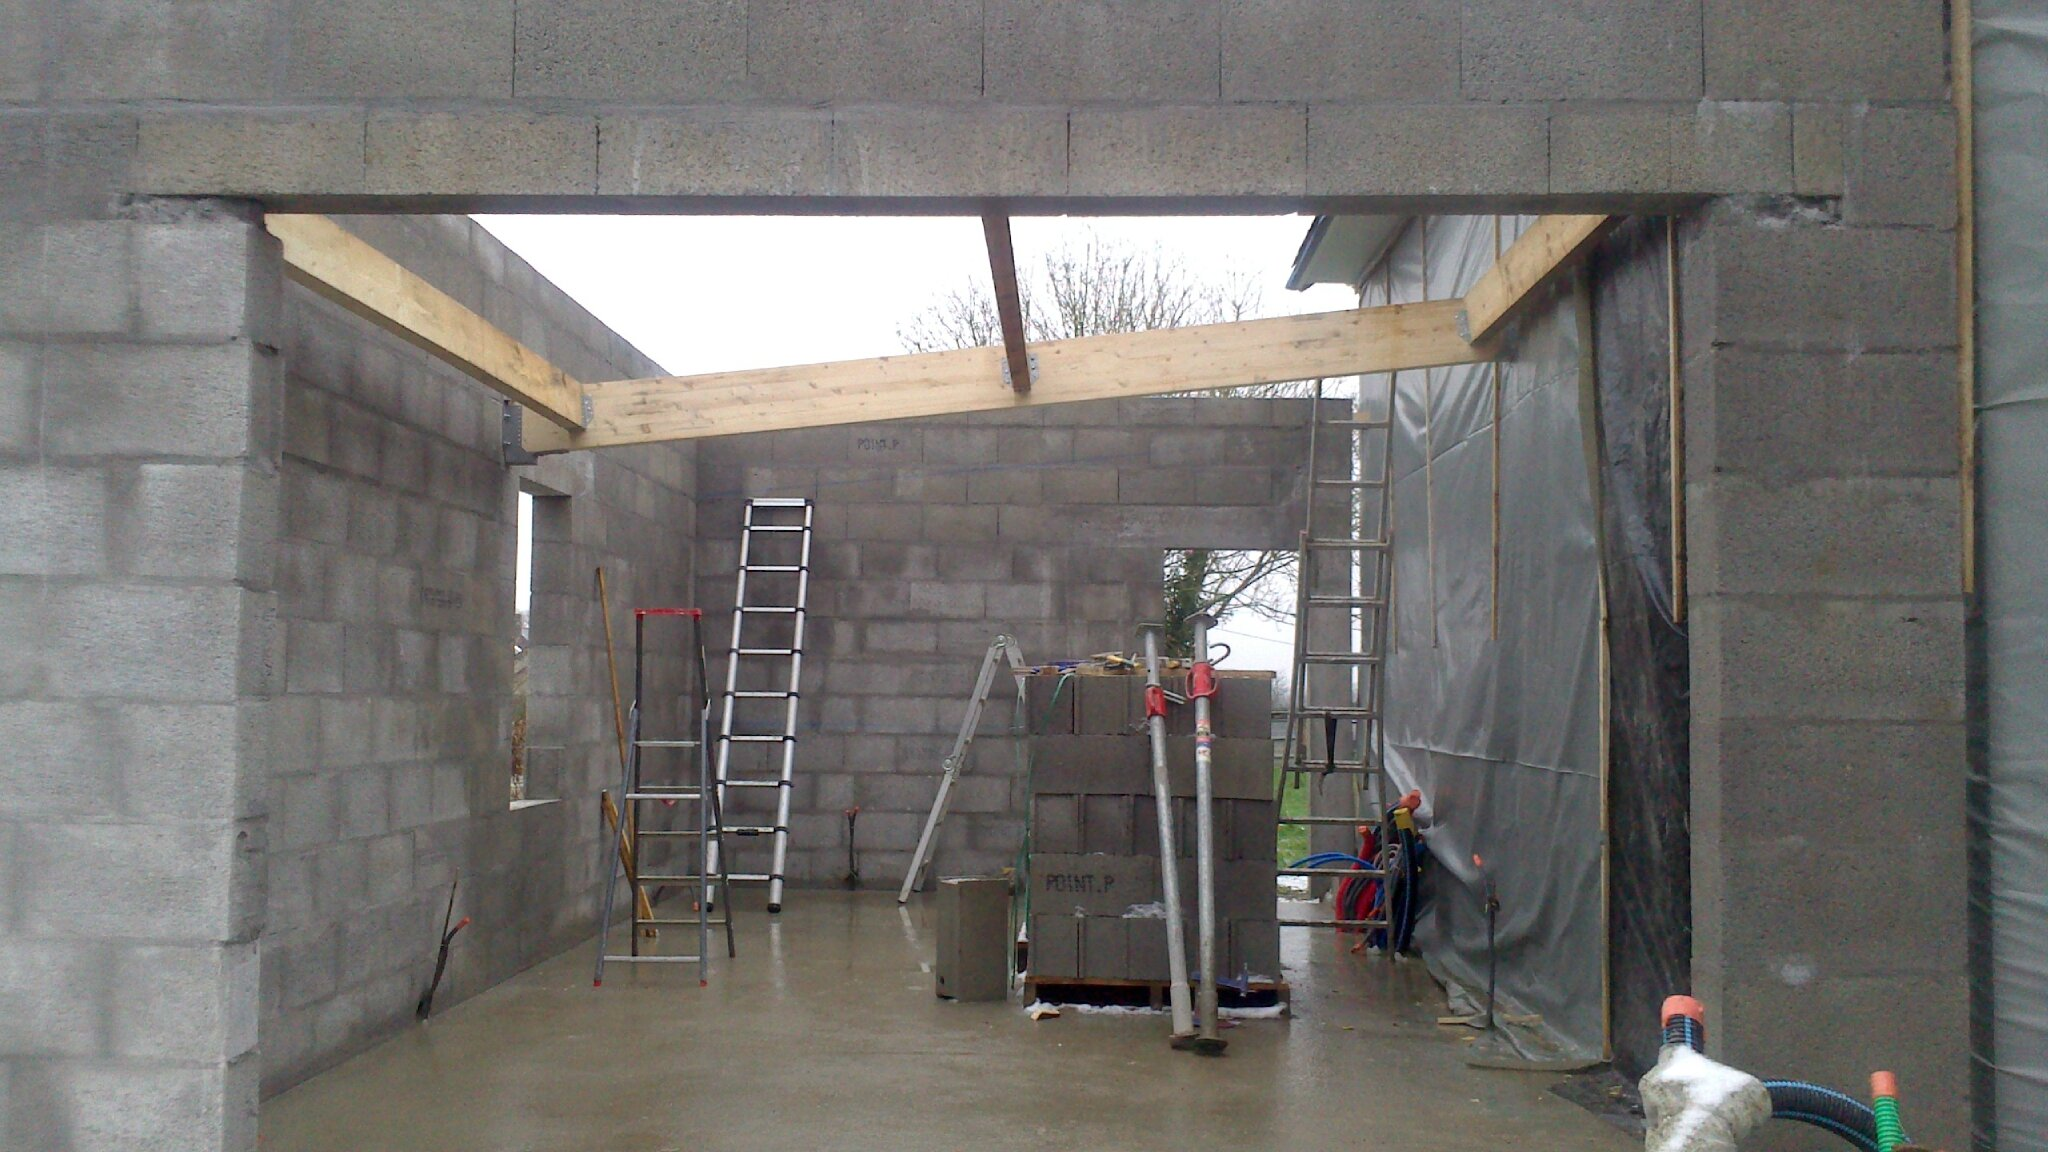 Charpente du garage toit plat auto construction de notre maison passive for Construction toit plat